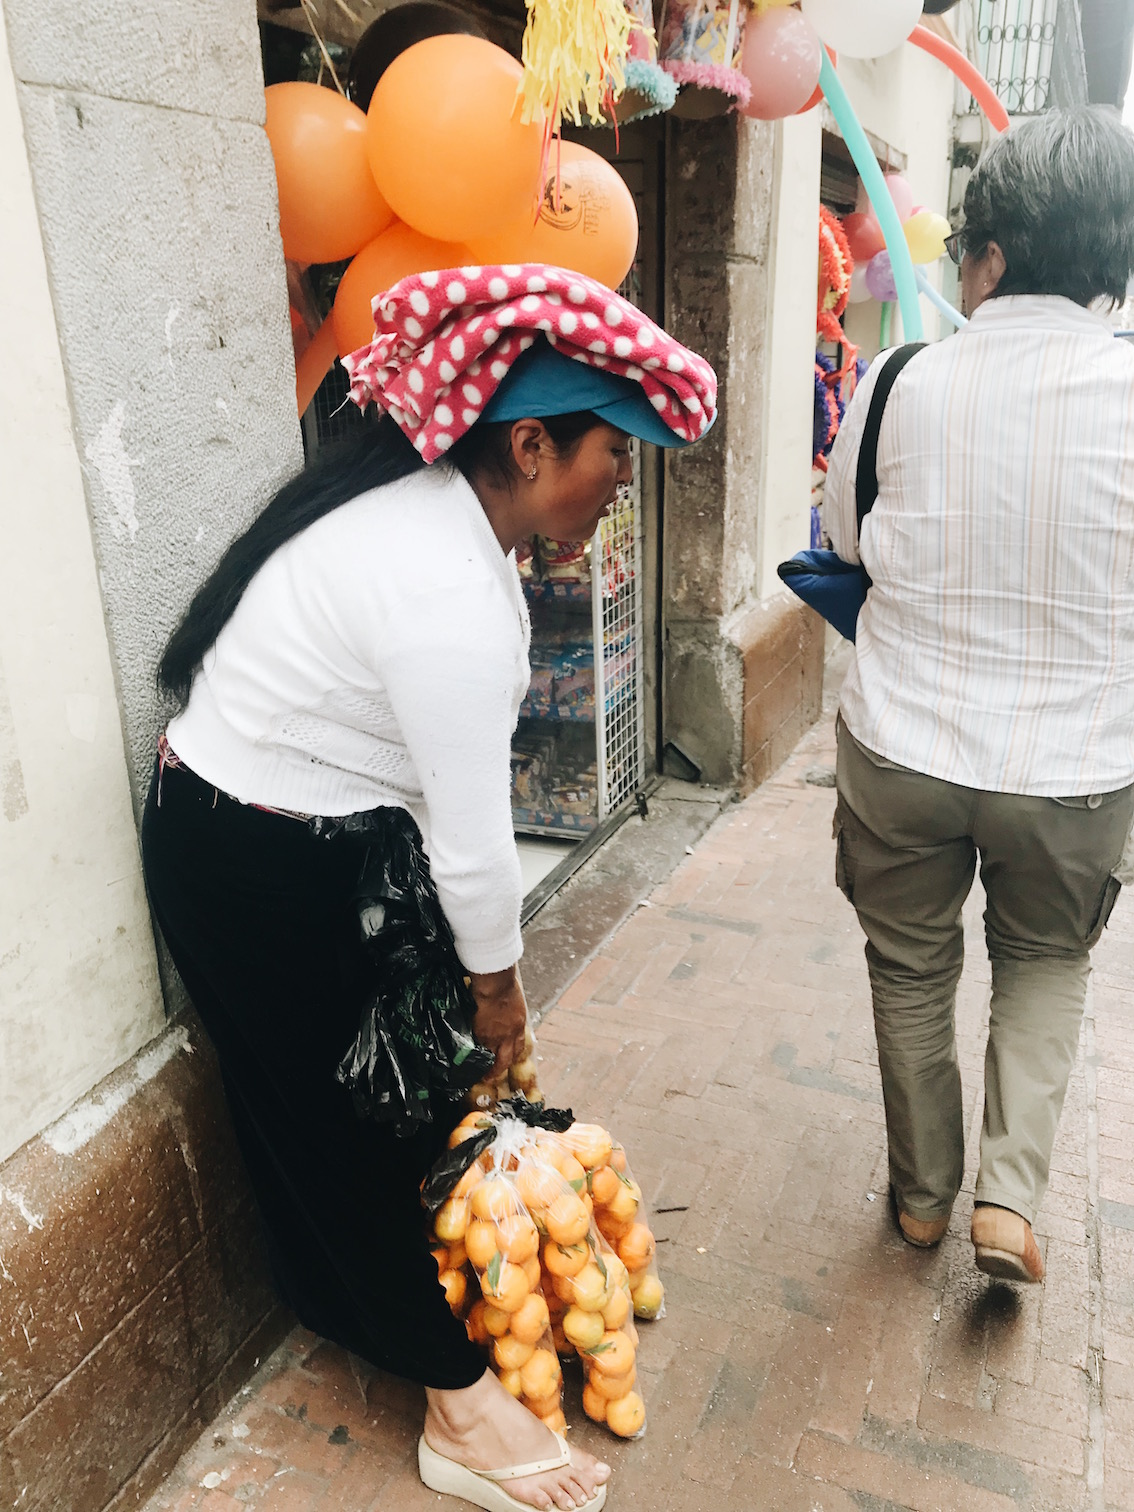 woman carrying a bag of oranges in the street